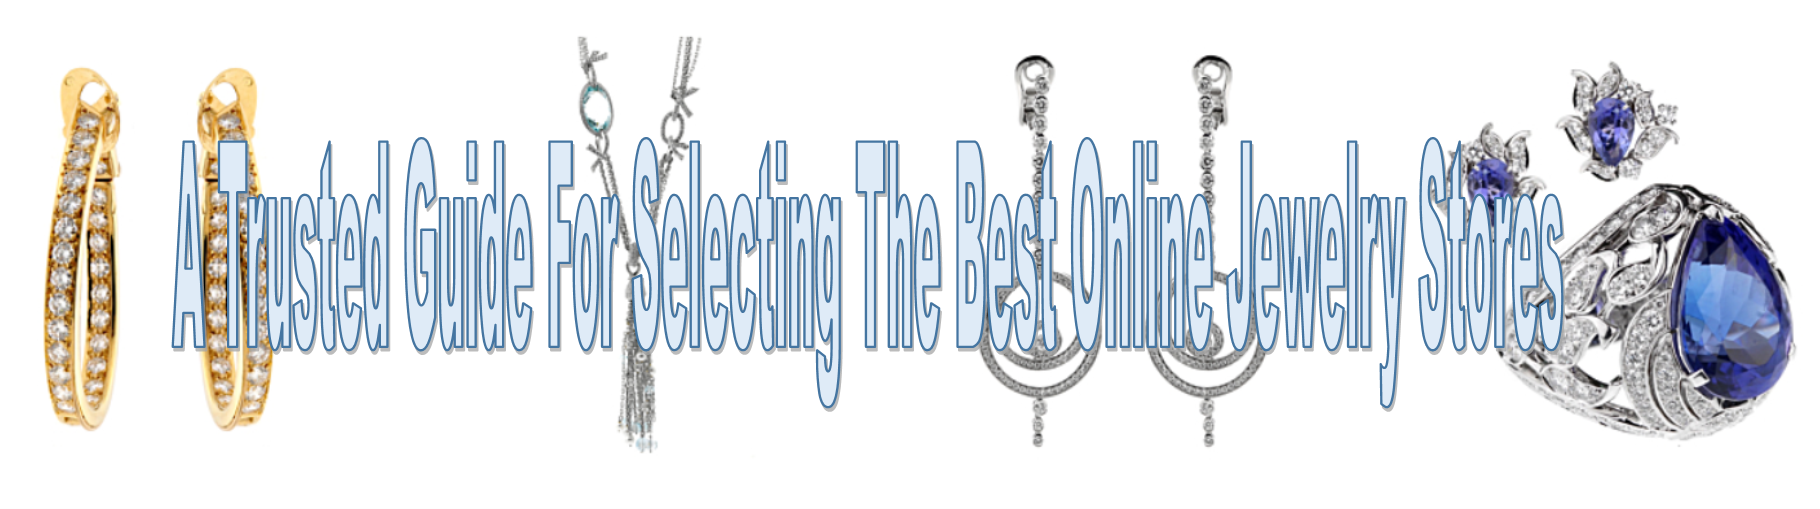 A Trusted Guide For Selecting The Best Online Jewelry Stores